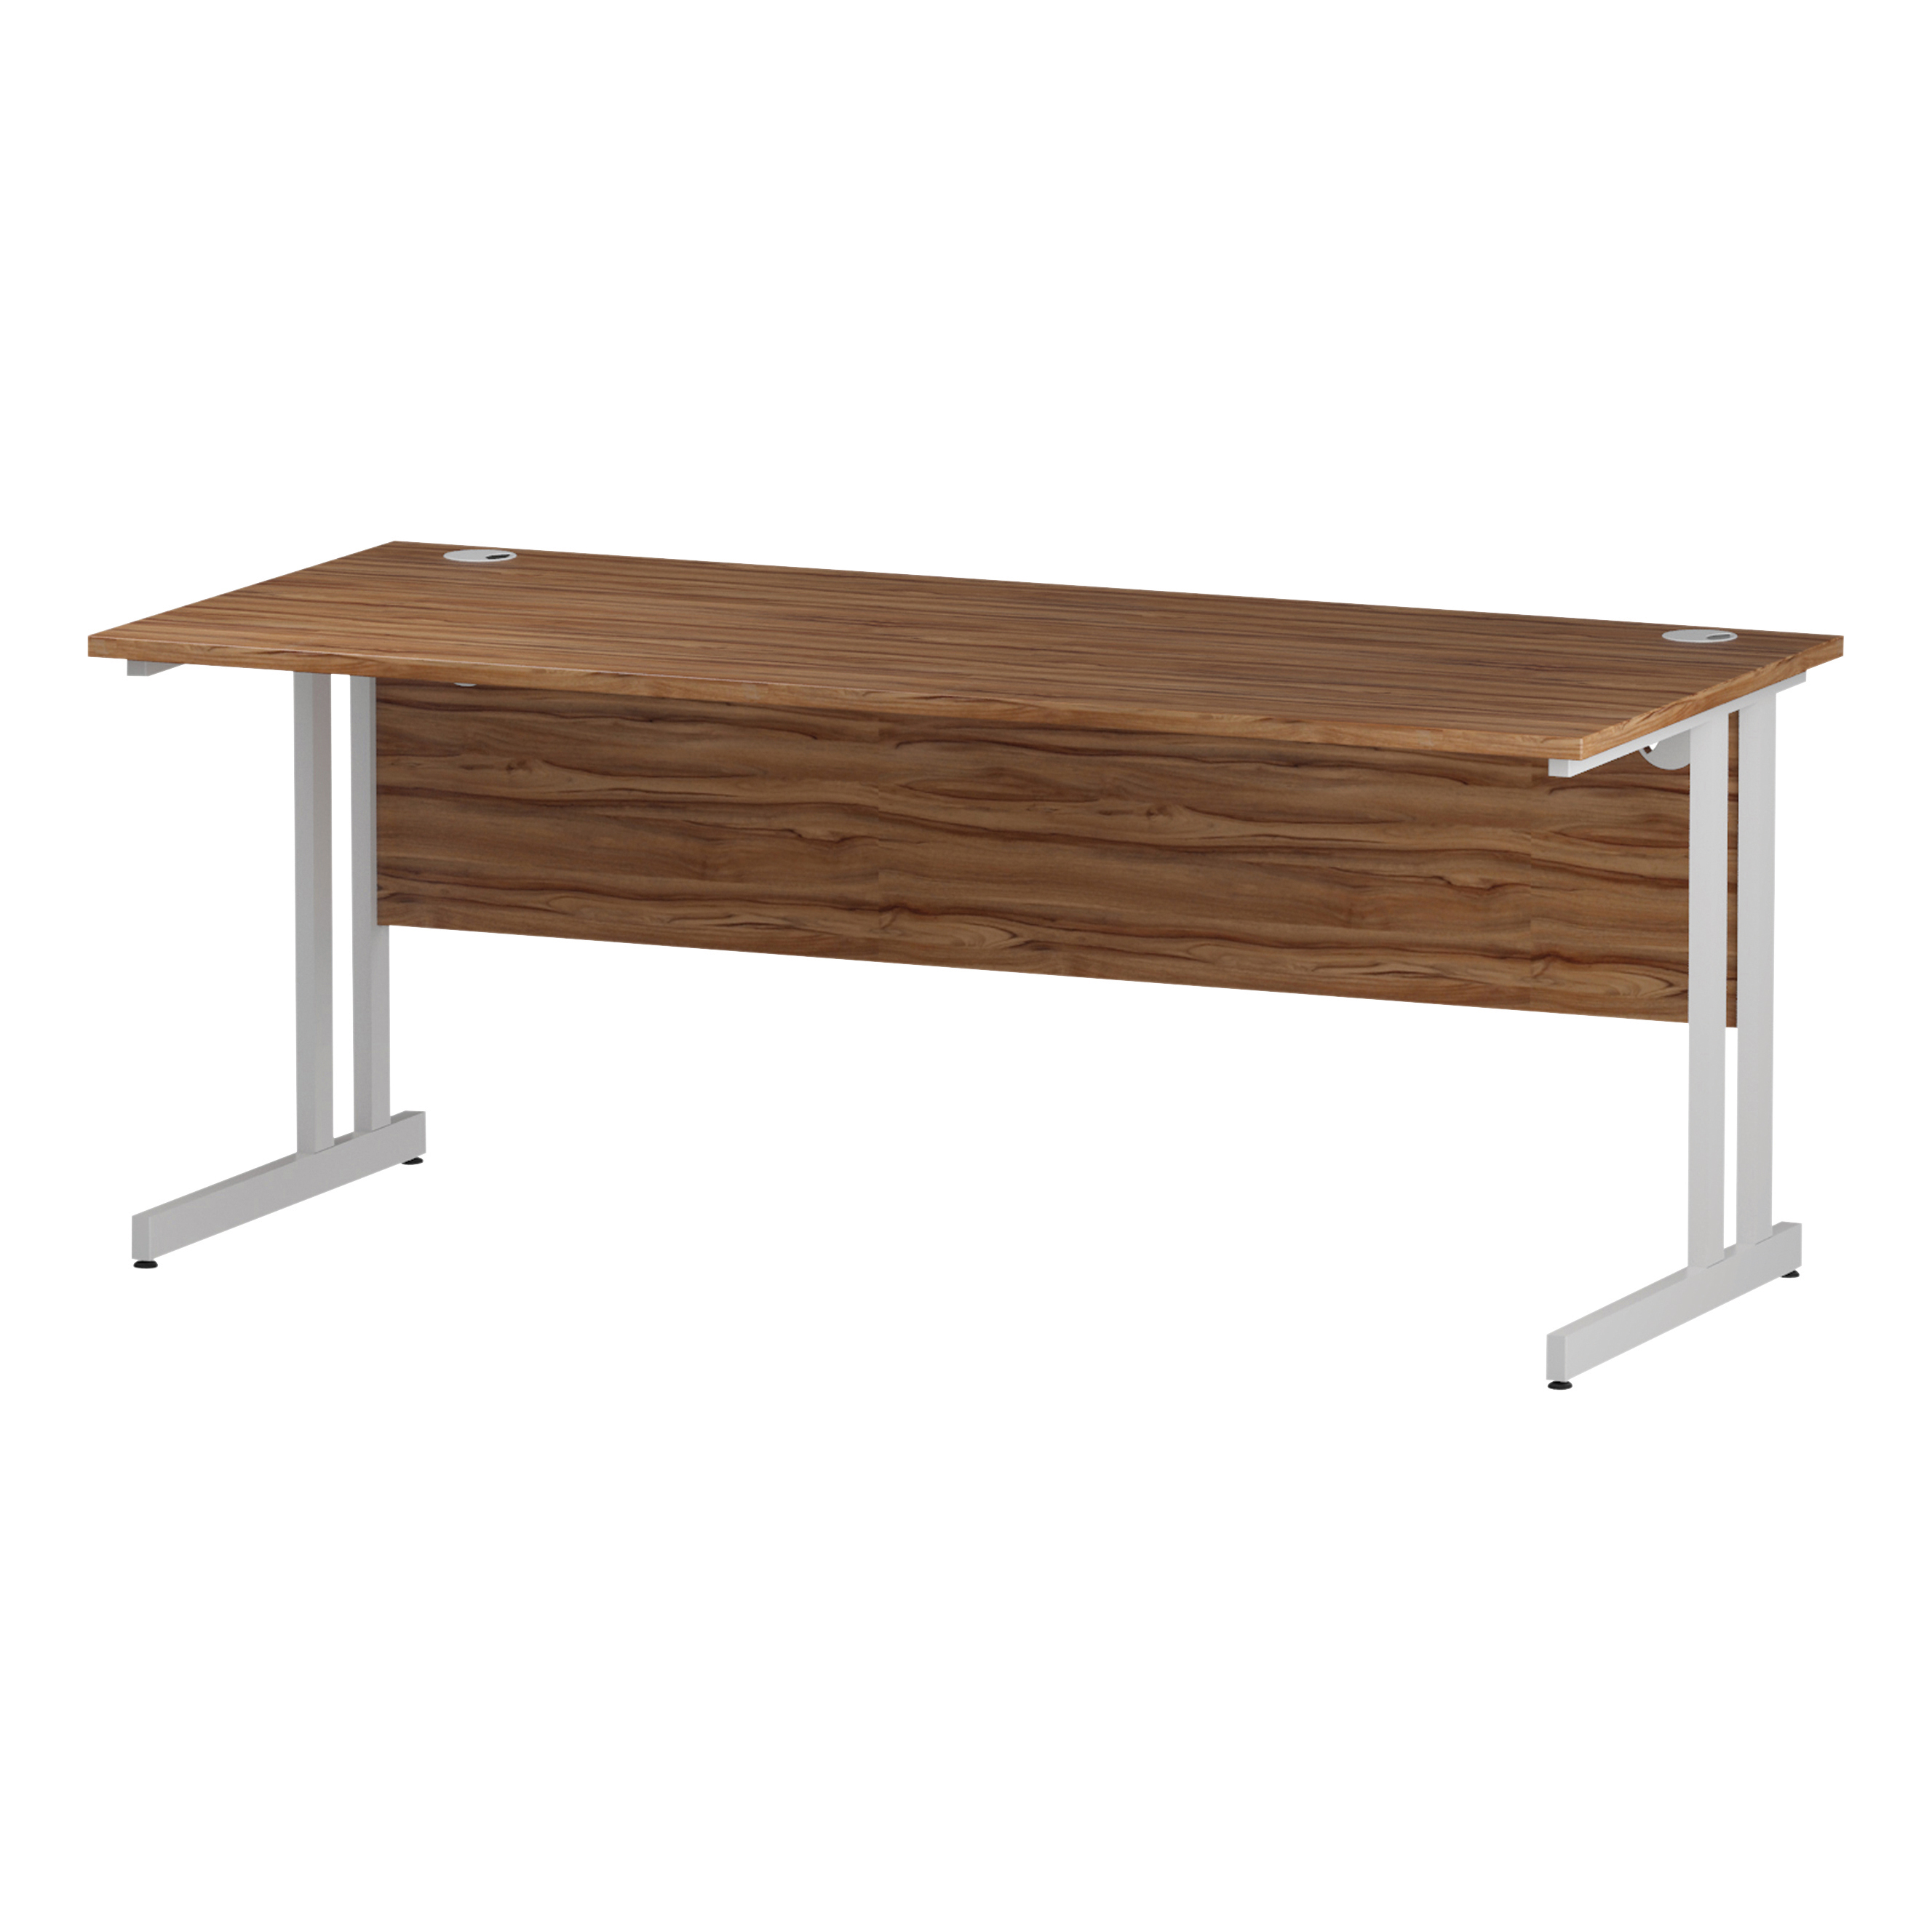 Trexus Rectangular Desk White Cantilever Leg 1800x800mm Walnut Ref I001908